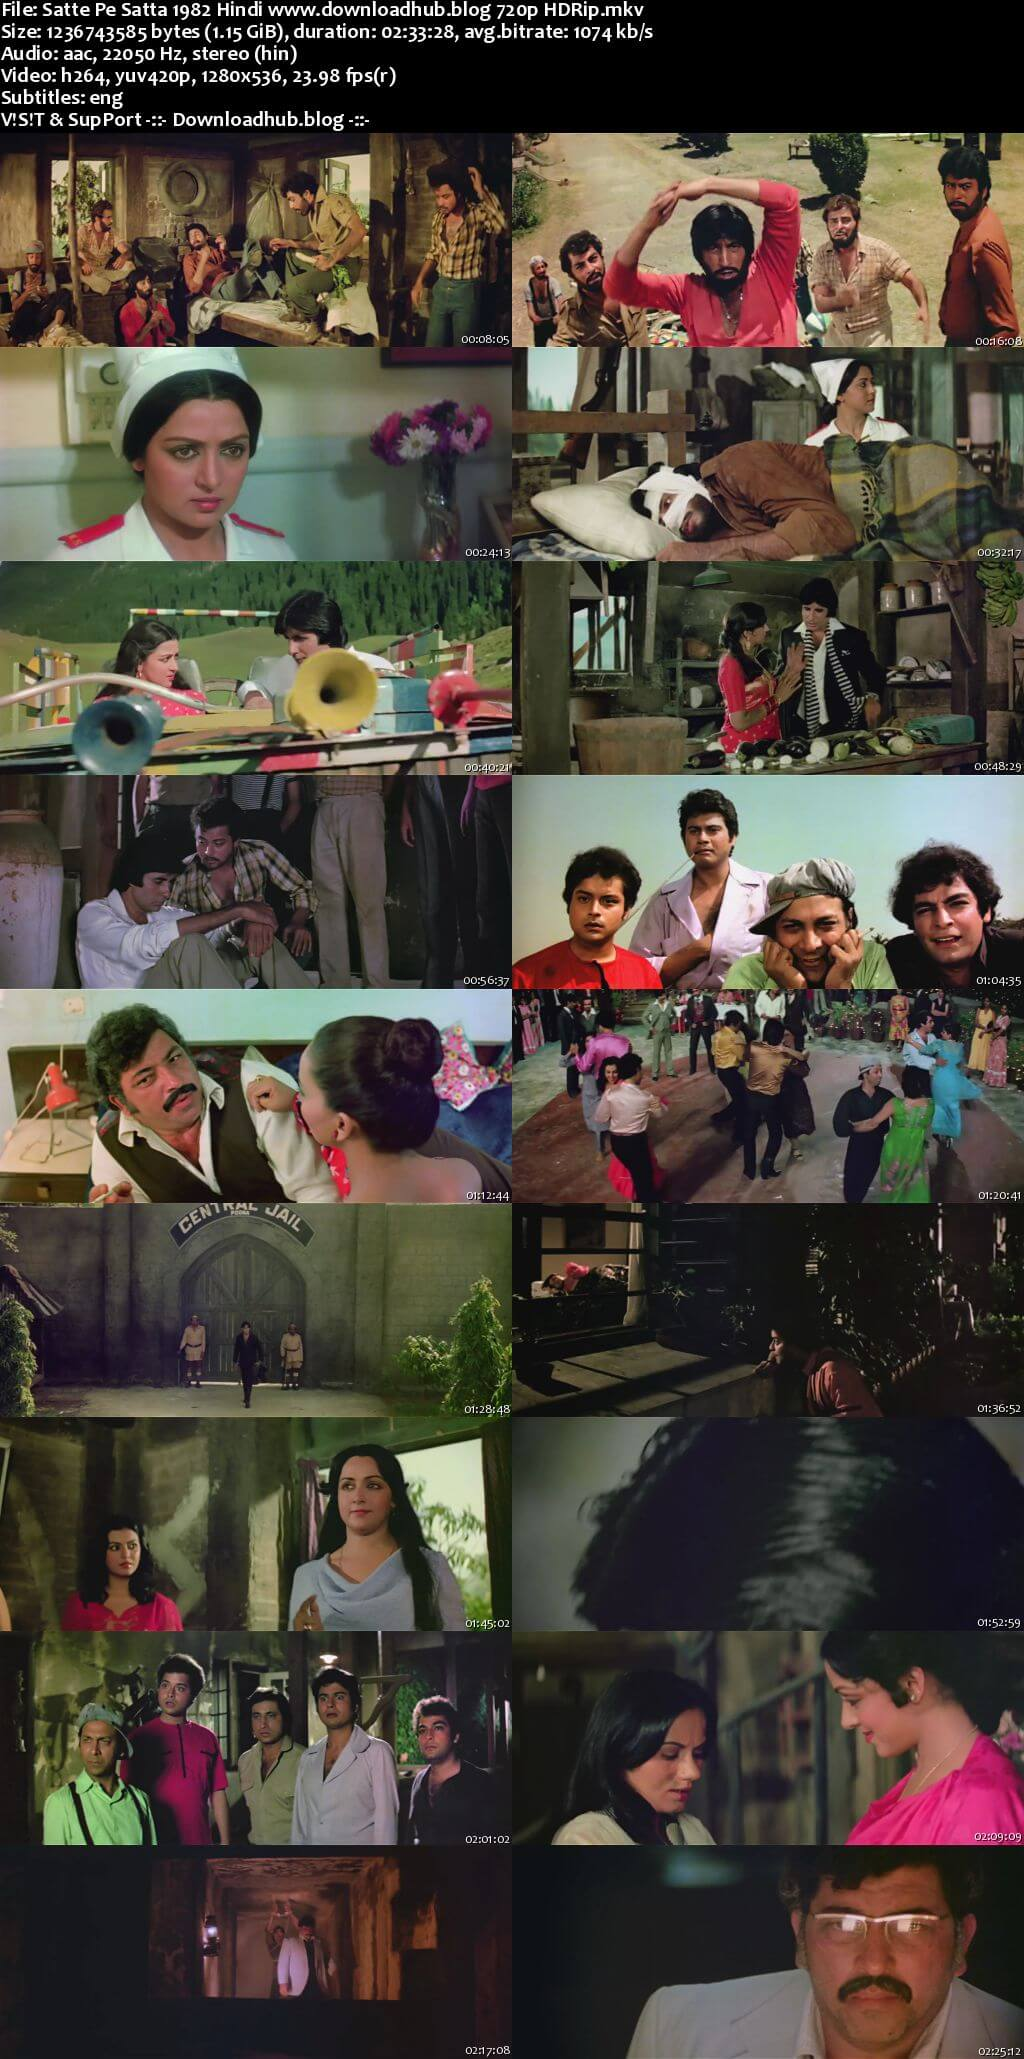 Satte Pe Satta 1982 Hindi 720p HDRip ESubs